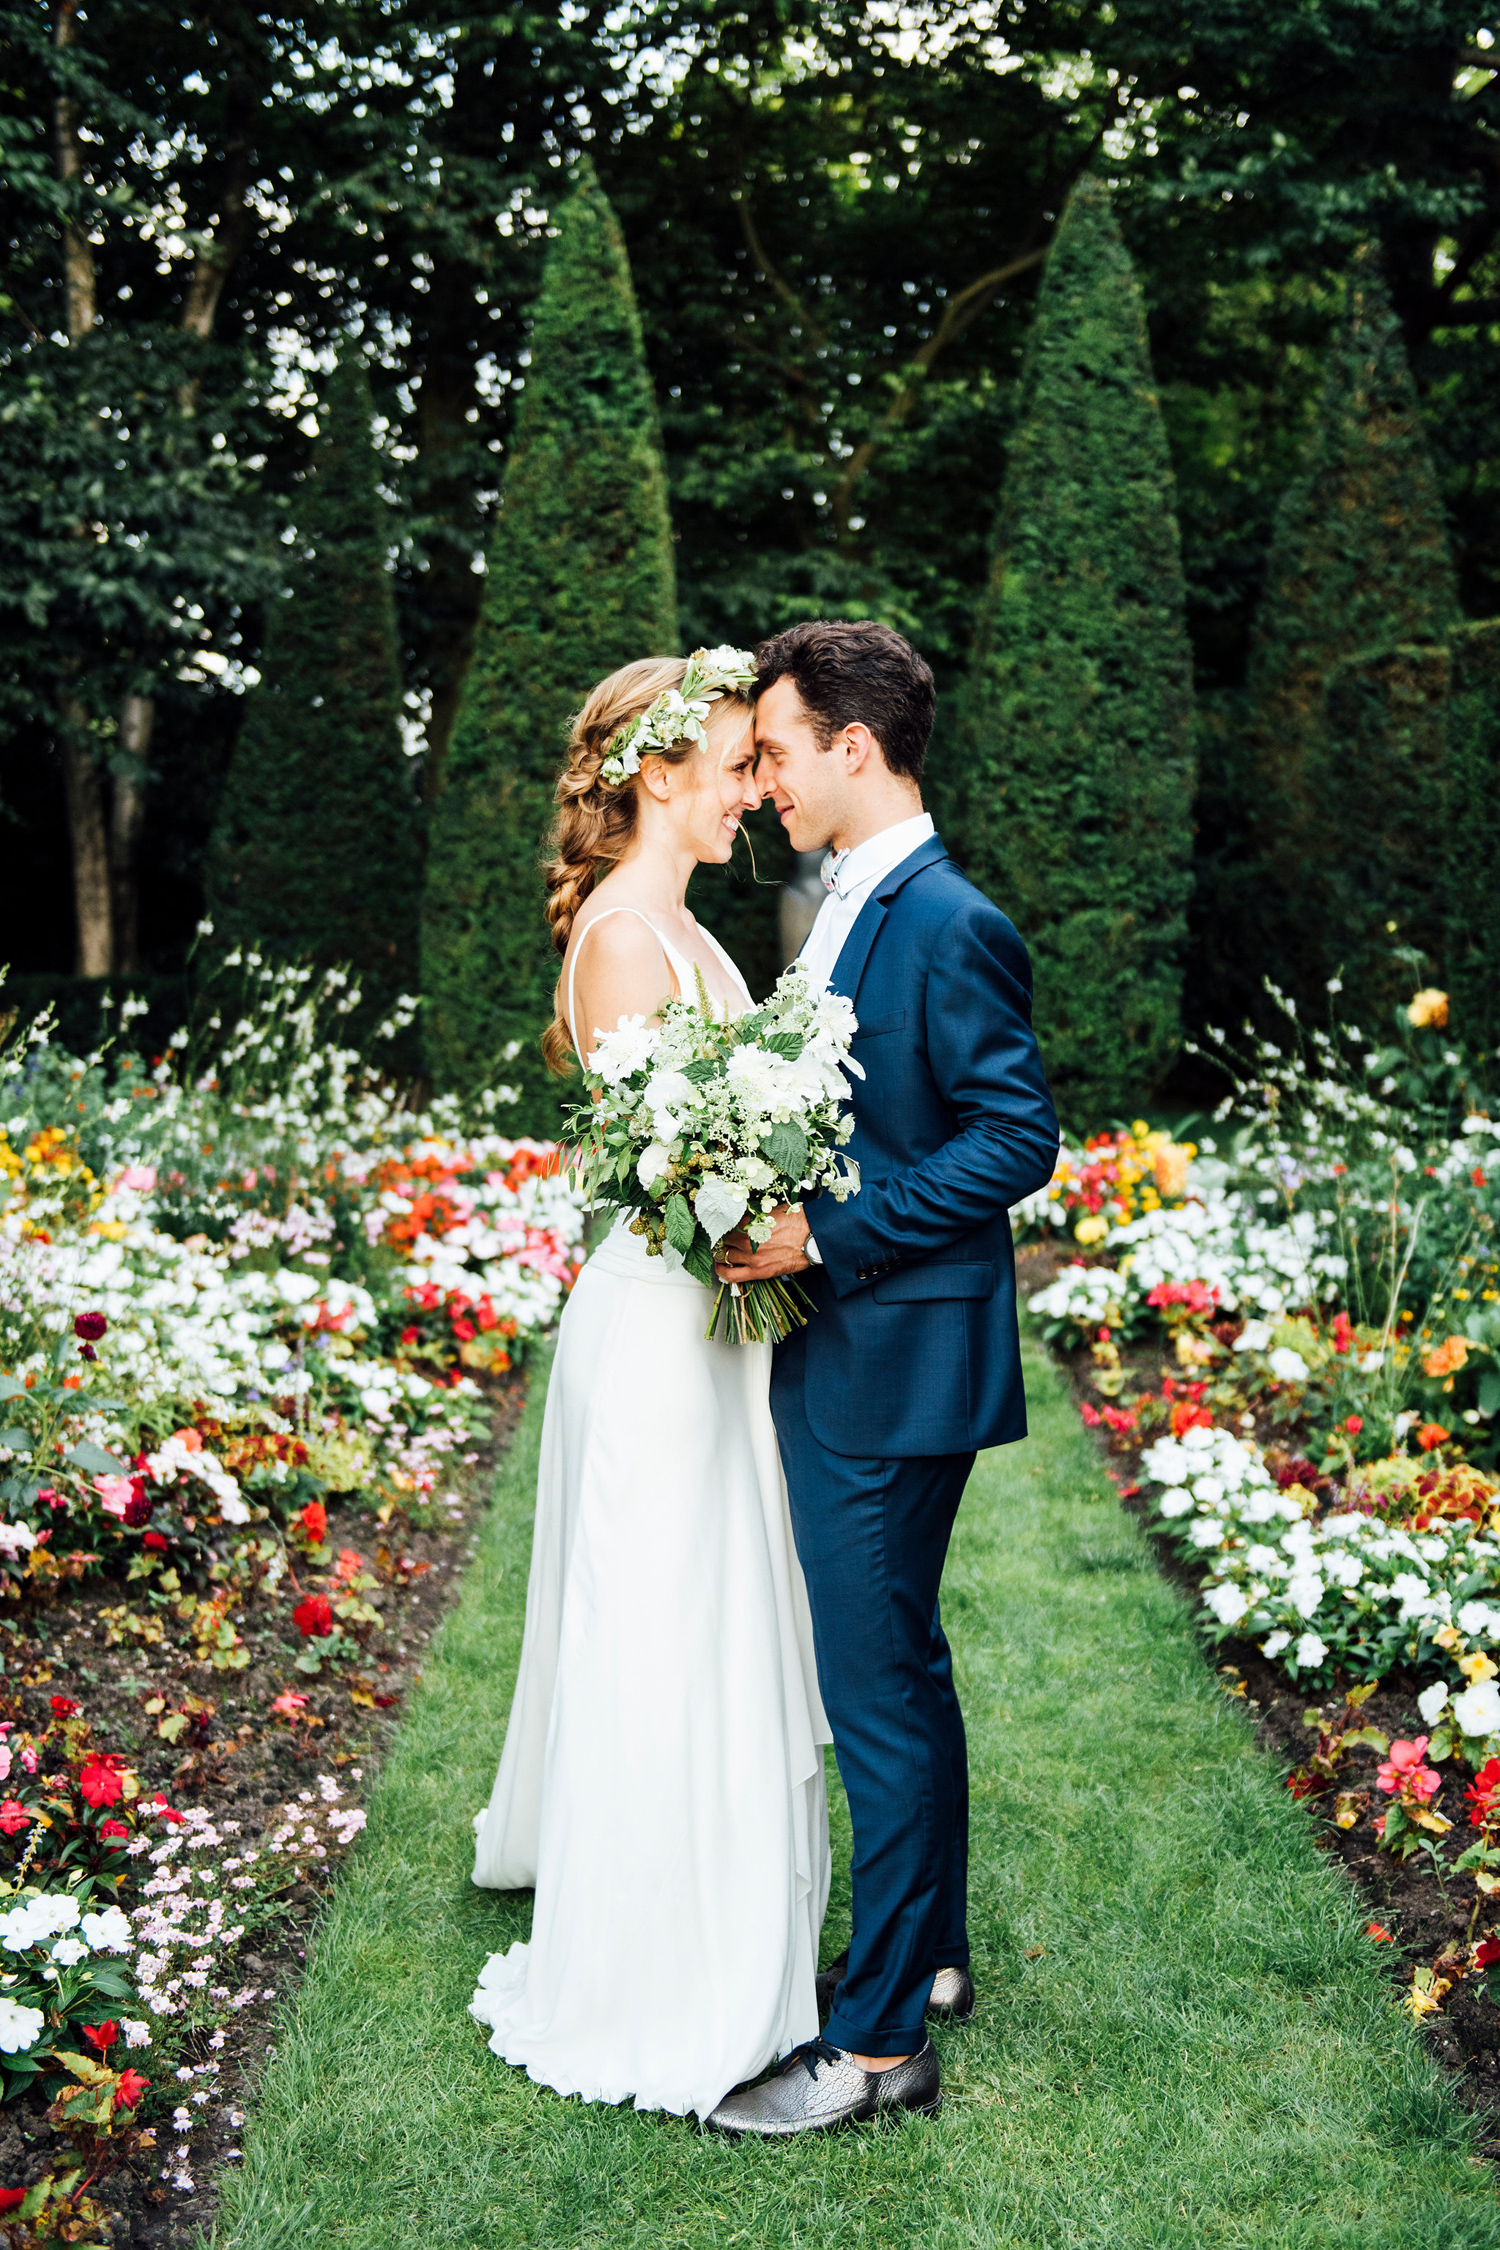 Katie_Mitchell_Photography_French_Country_Garden_Wedding_Paris_28.jpg